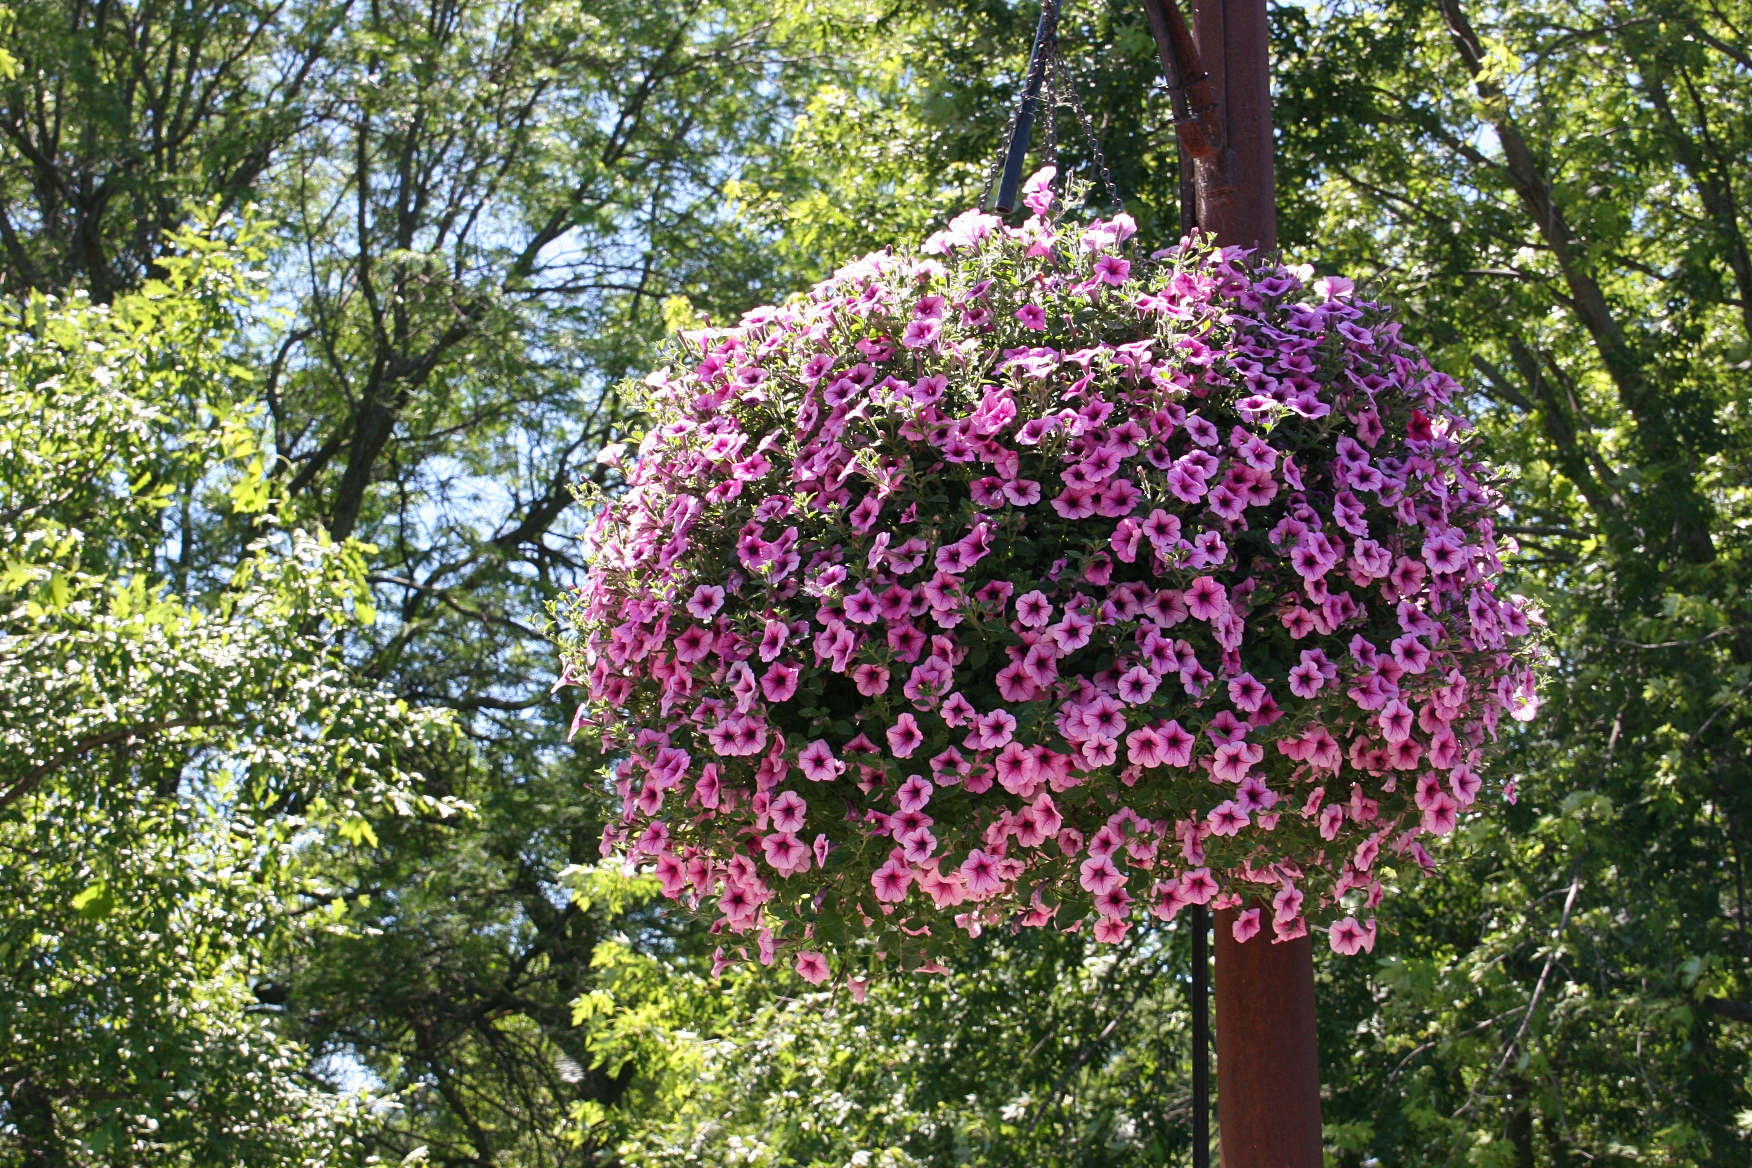 https://mnprairieroots.files.wordpress.com/2015/06/morehouse-park-hanging-flower-basket.jpg